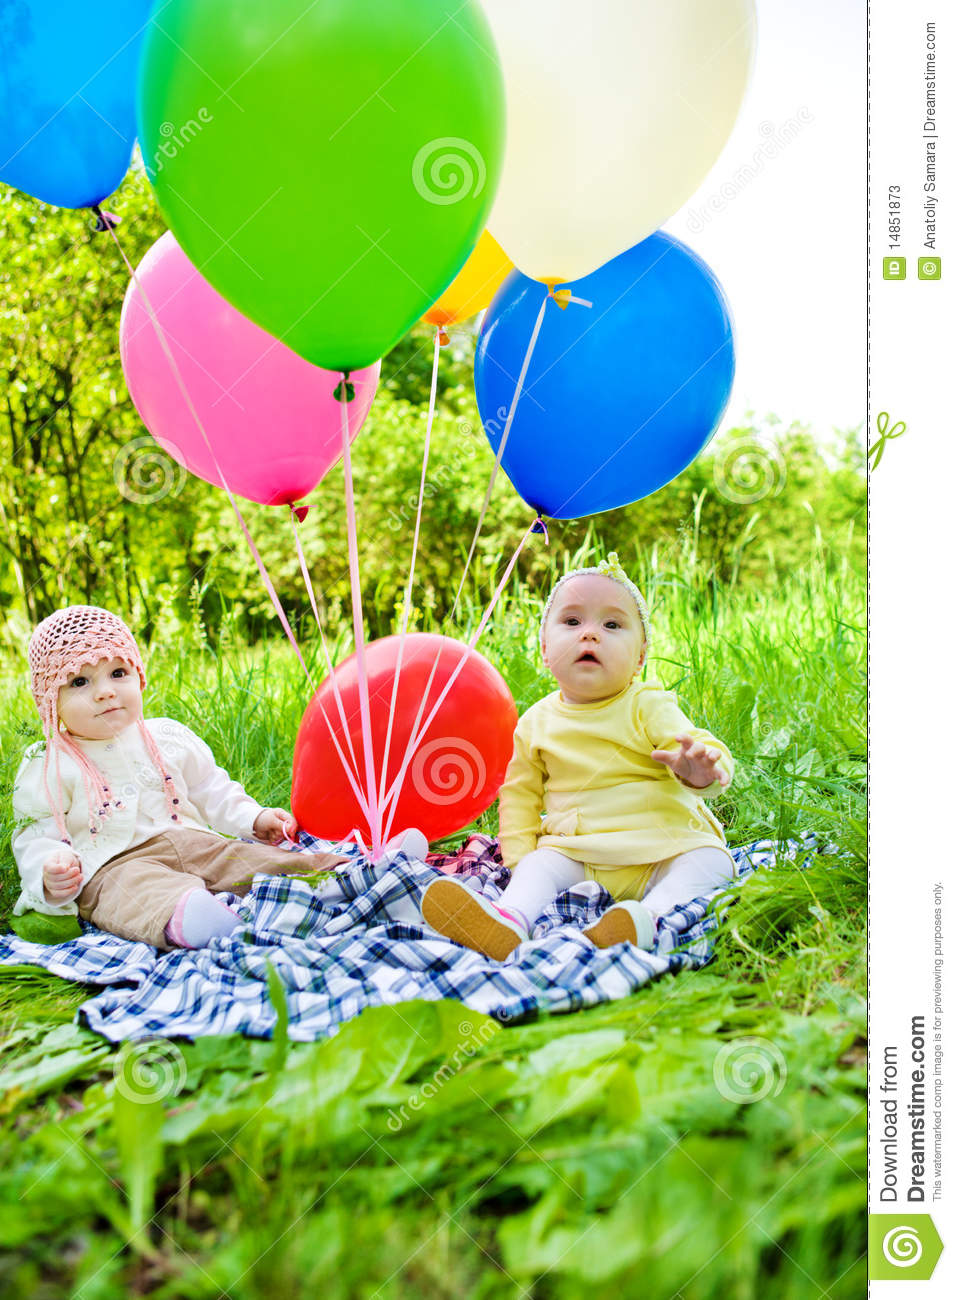 Babies with balloons